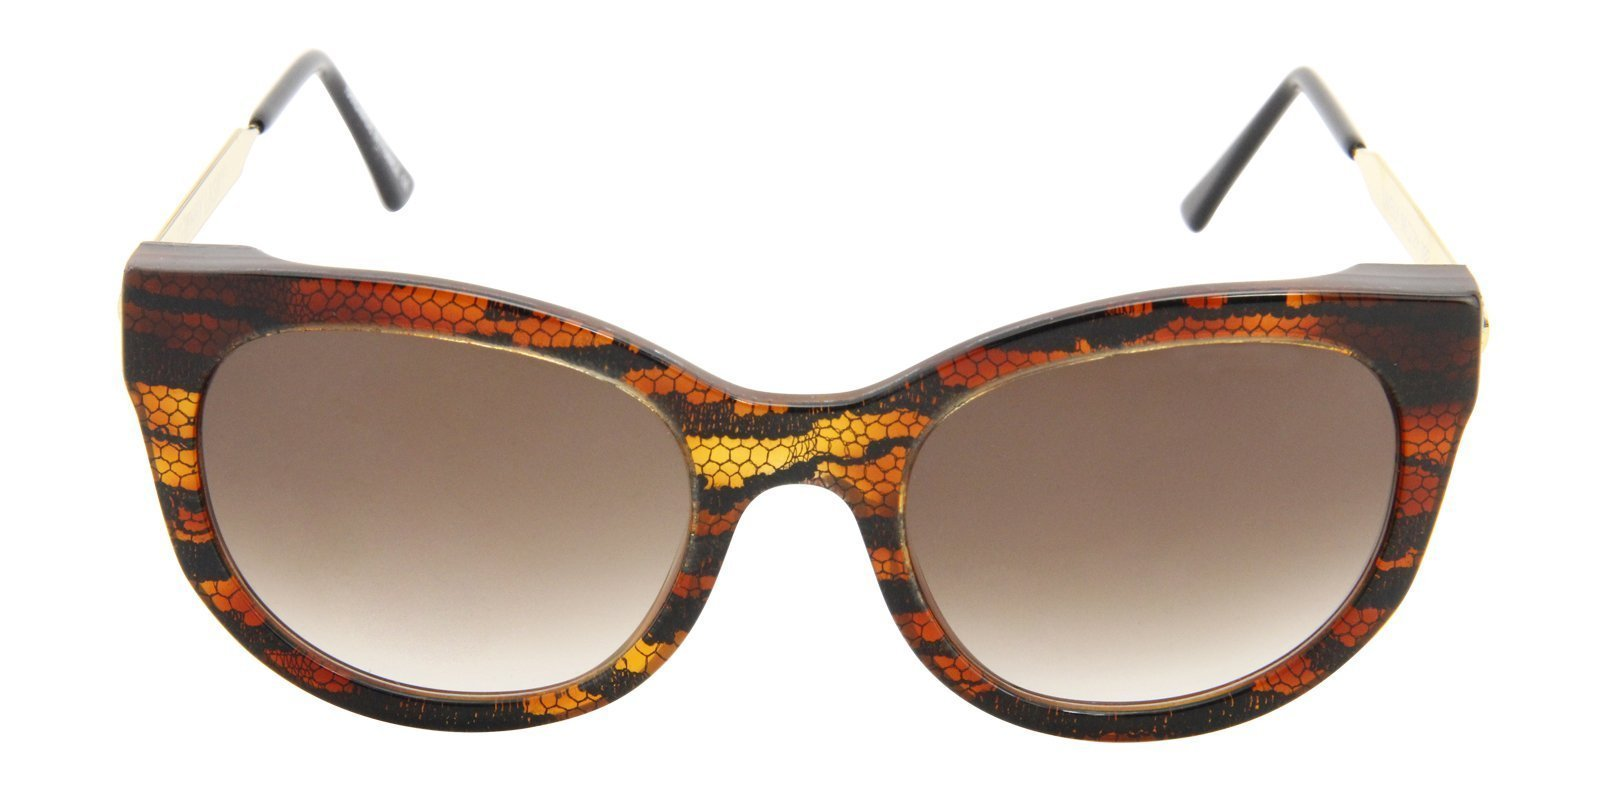 Thierry Lasry - Lively Brown Oval Women Sunglasses - 56mm-Sunglasses-Designer Eyes